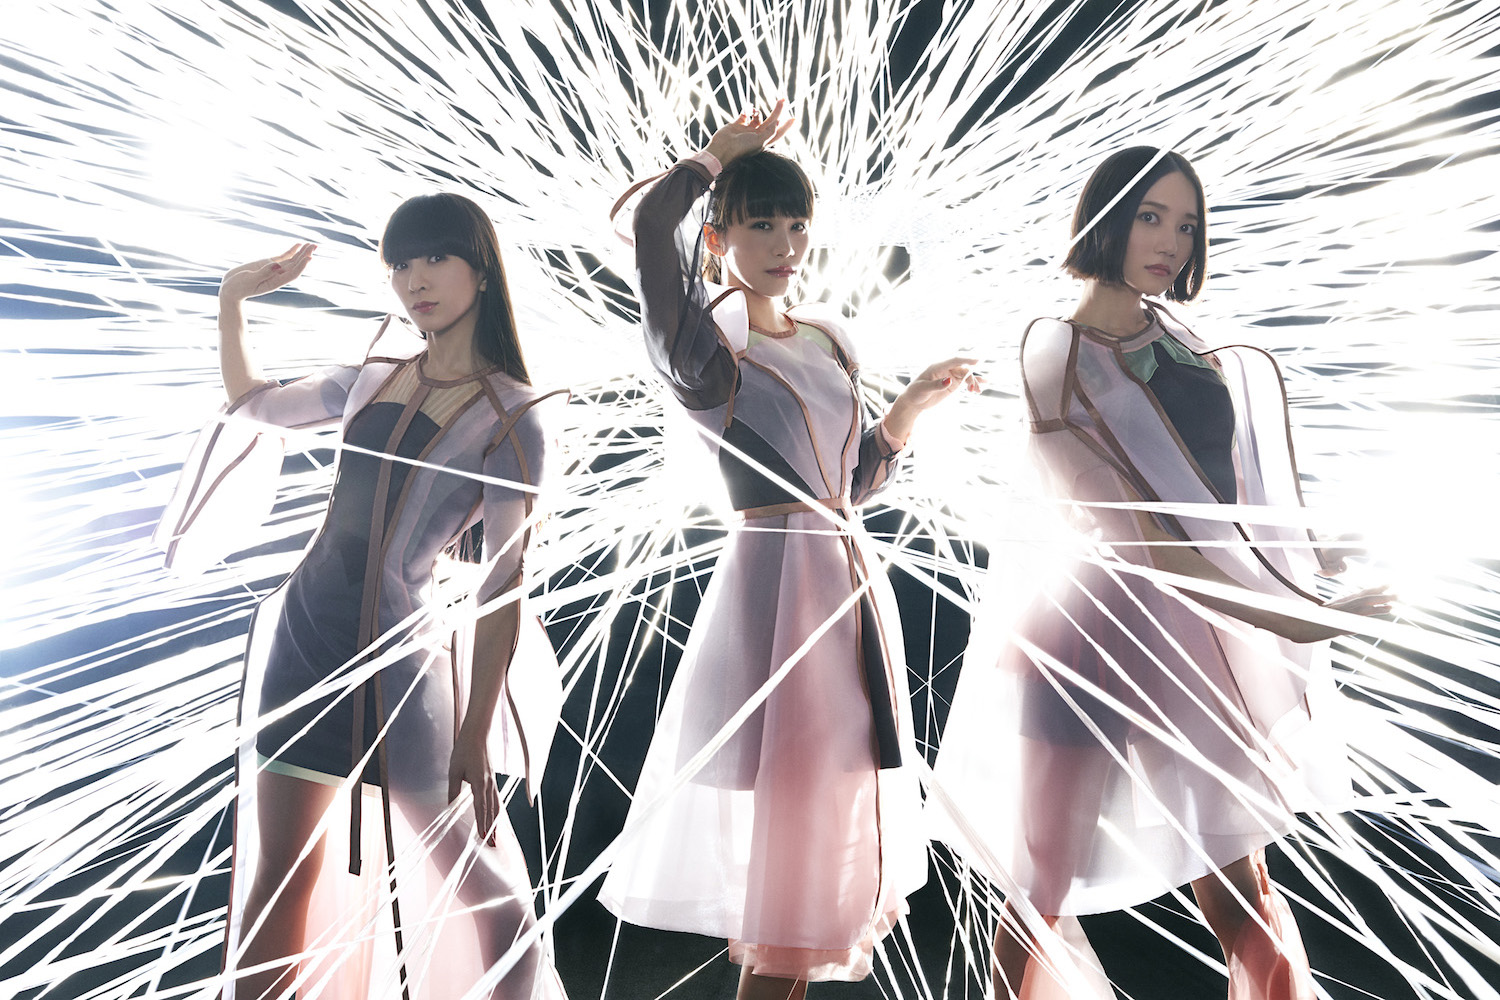 RMMS-Perfume-NekoPOP-Future-Pop-Tour-2019-interview-1